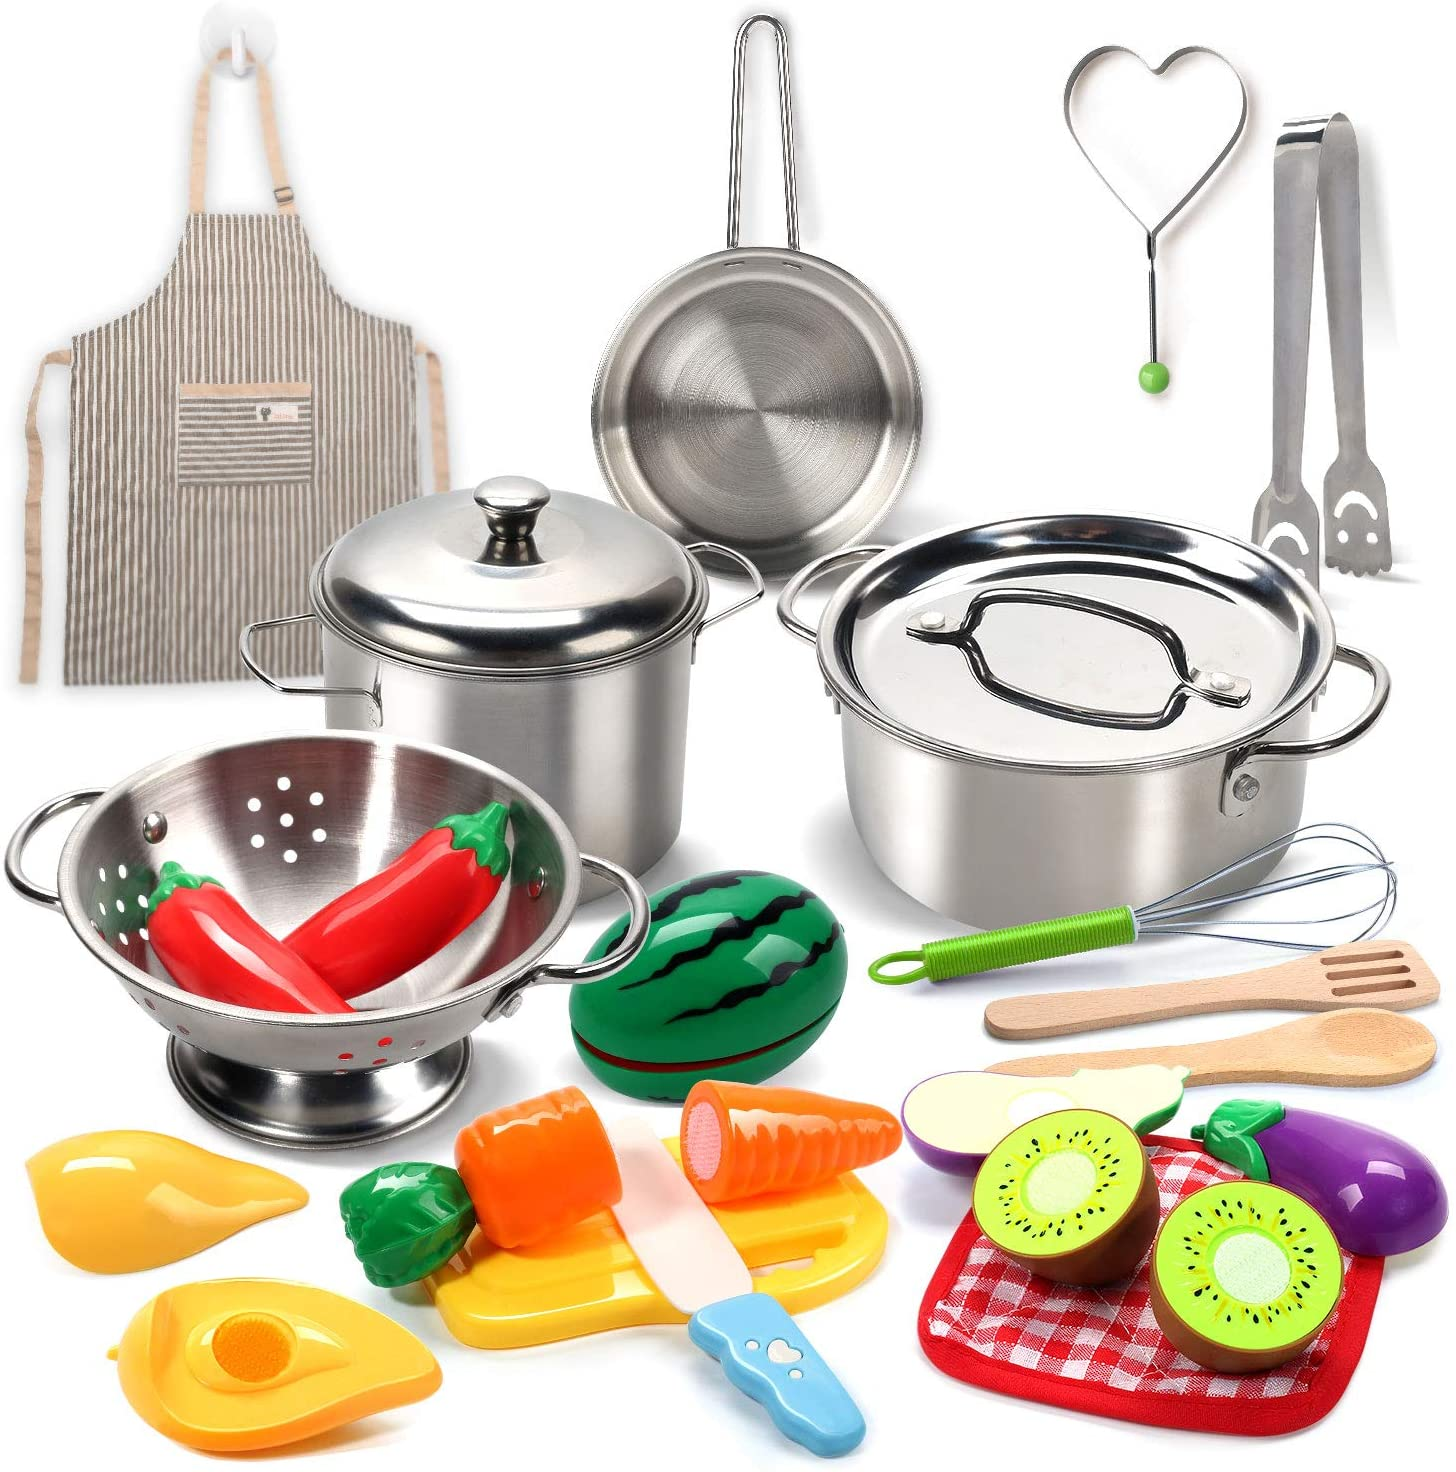 Pretend Play Kitchen Toys Stainless Steel Cookware Pots Pans Set Toy For Kids Ebay